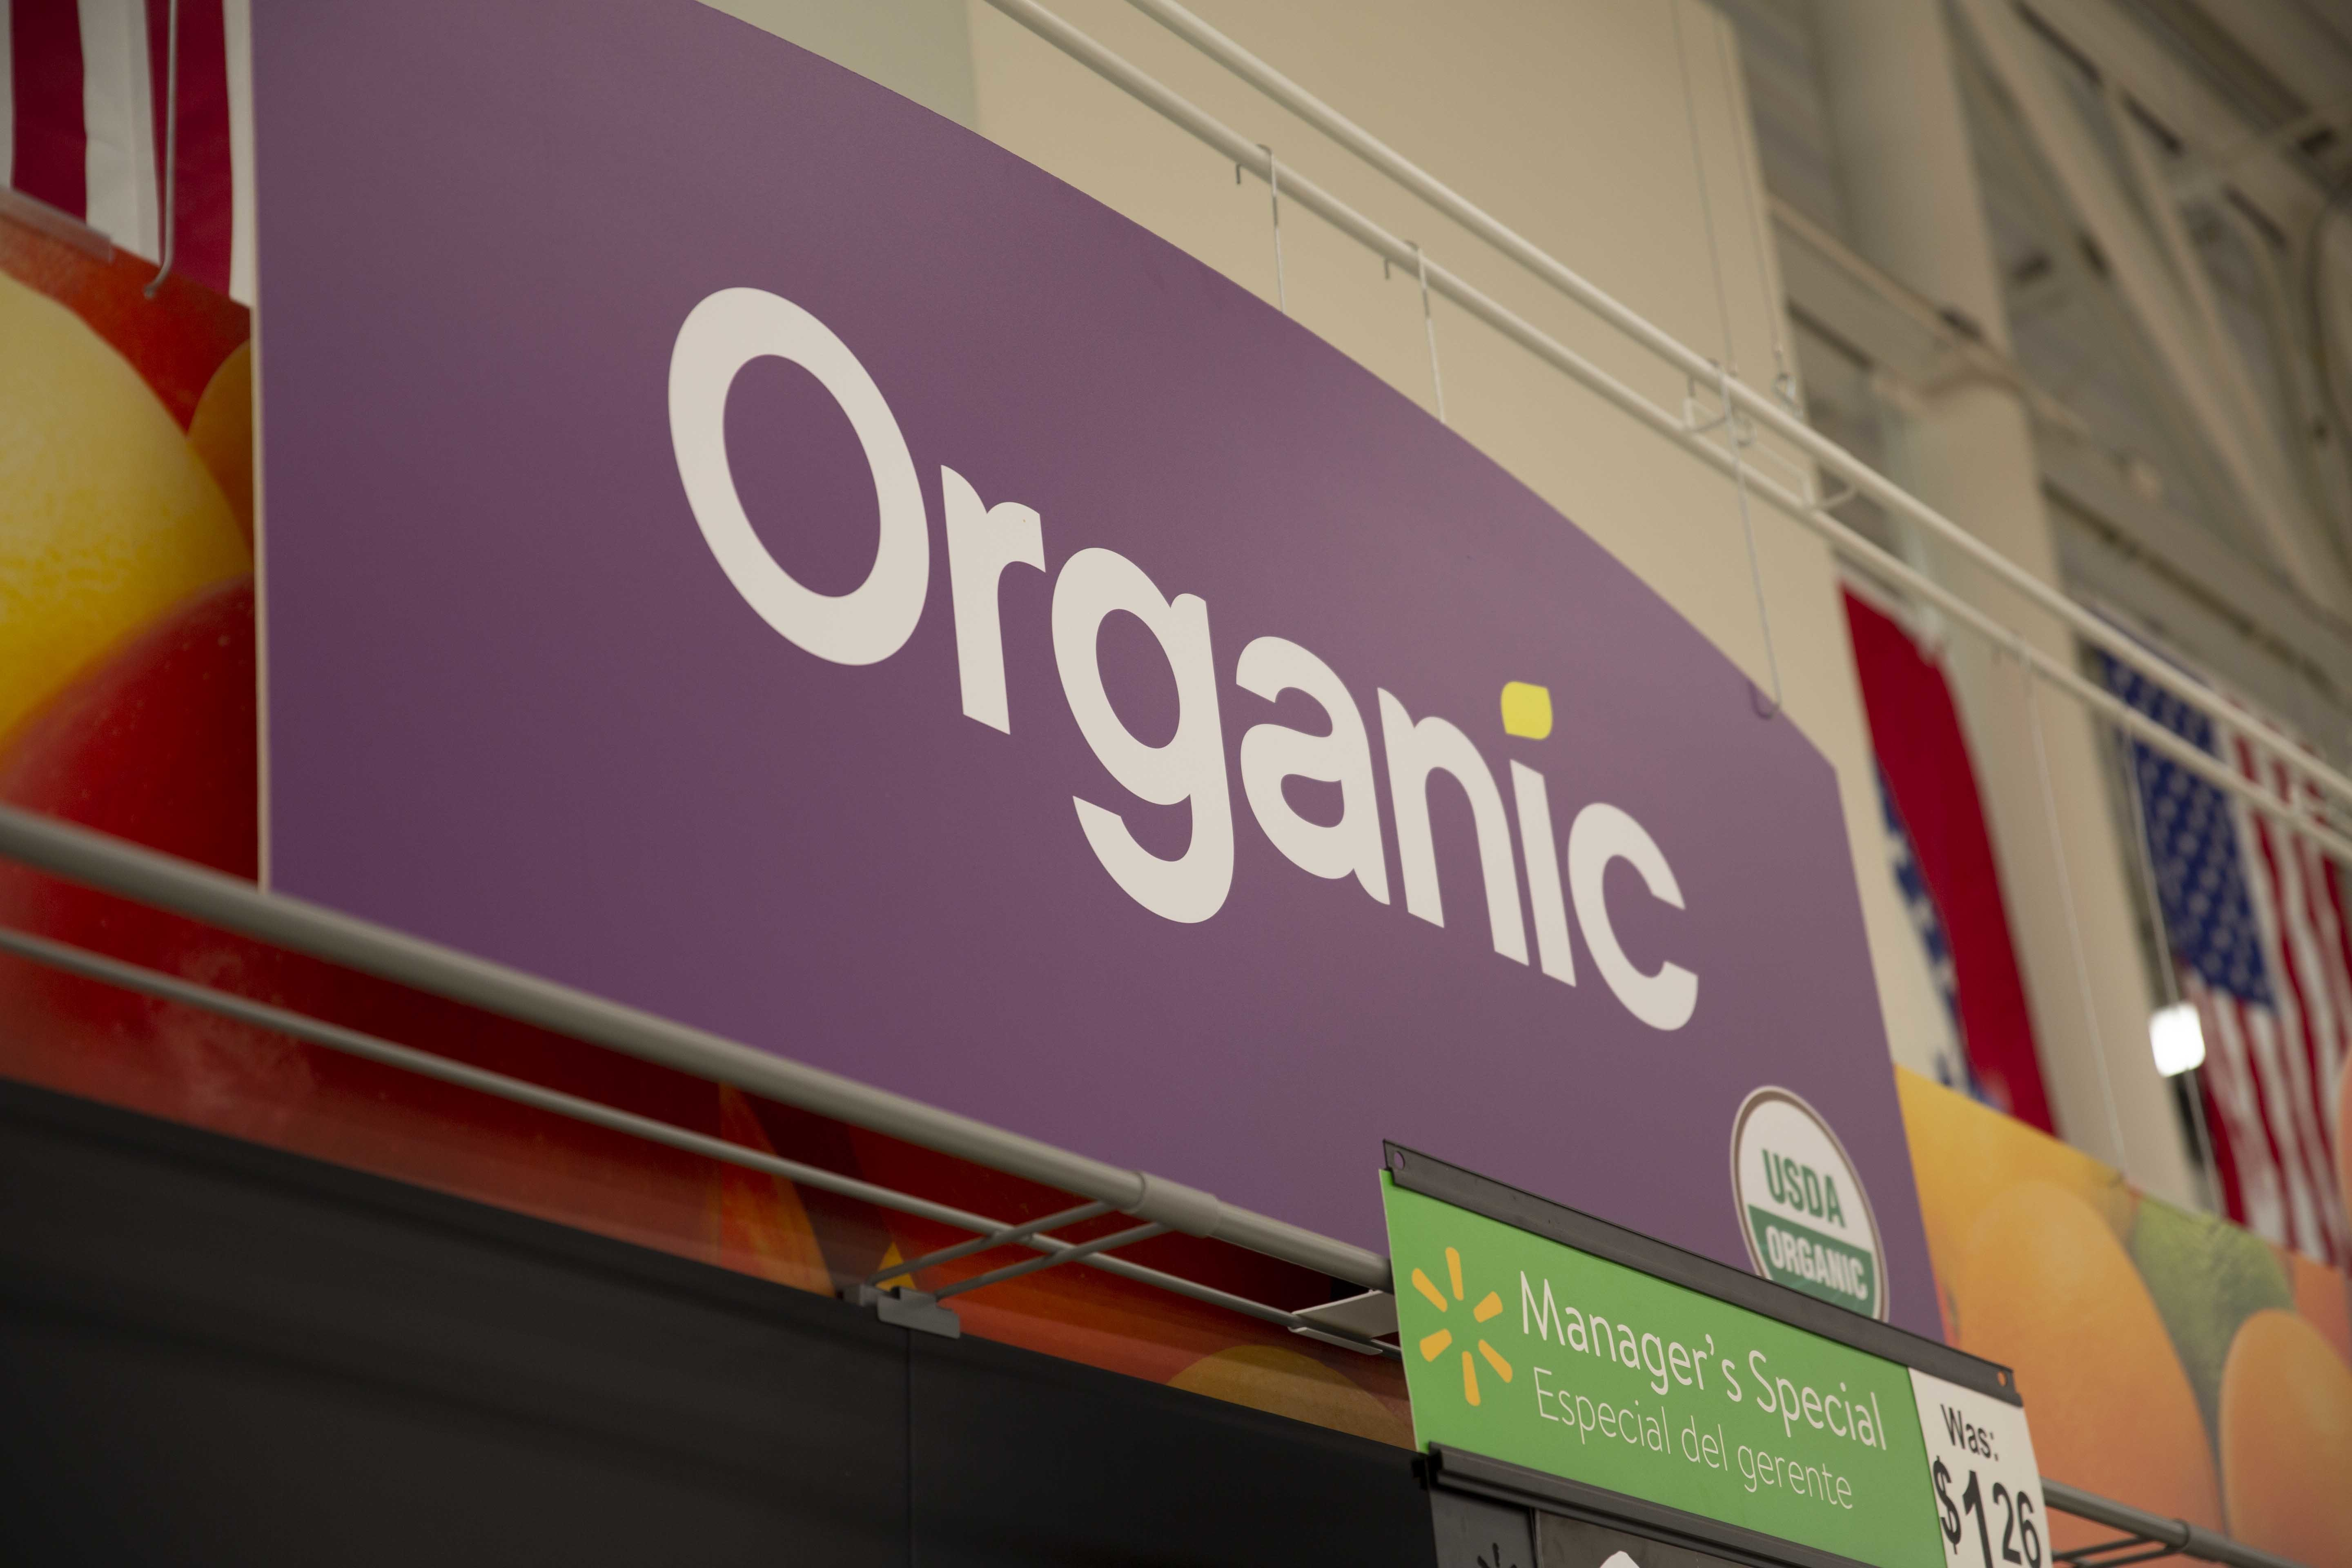 Organic signage hanging in store